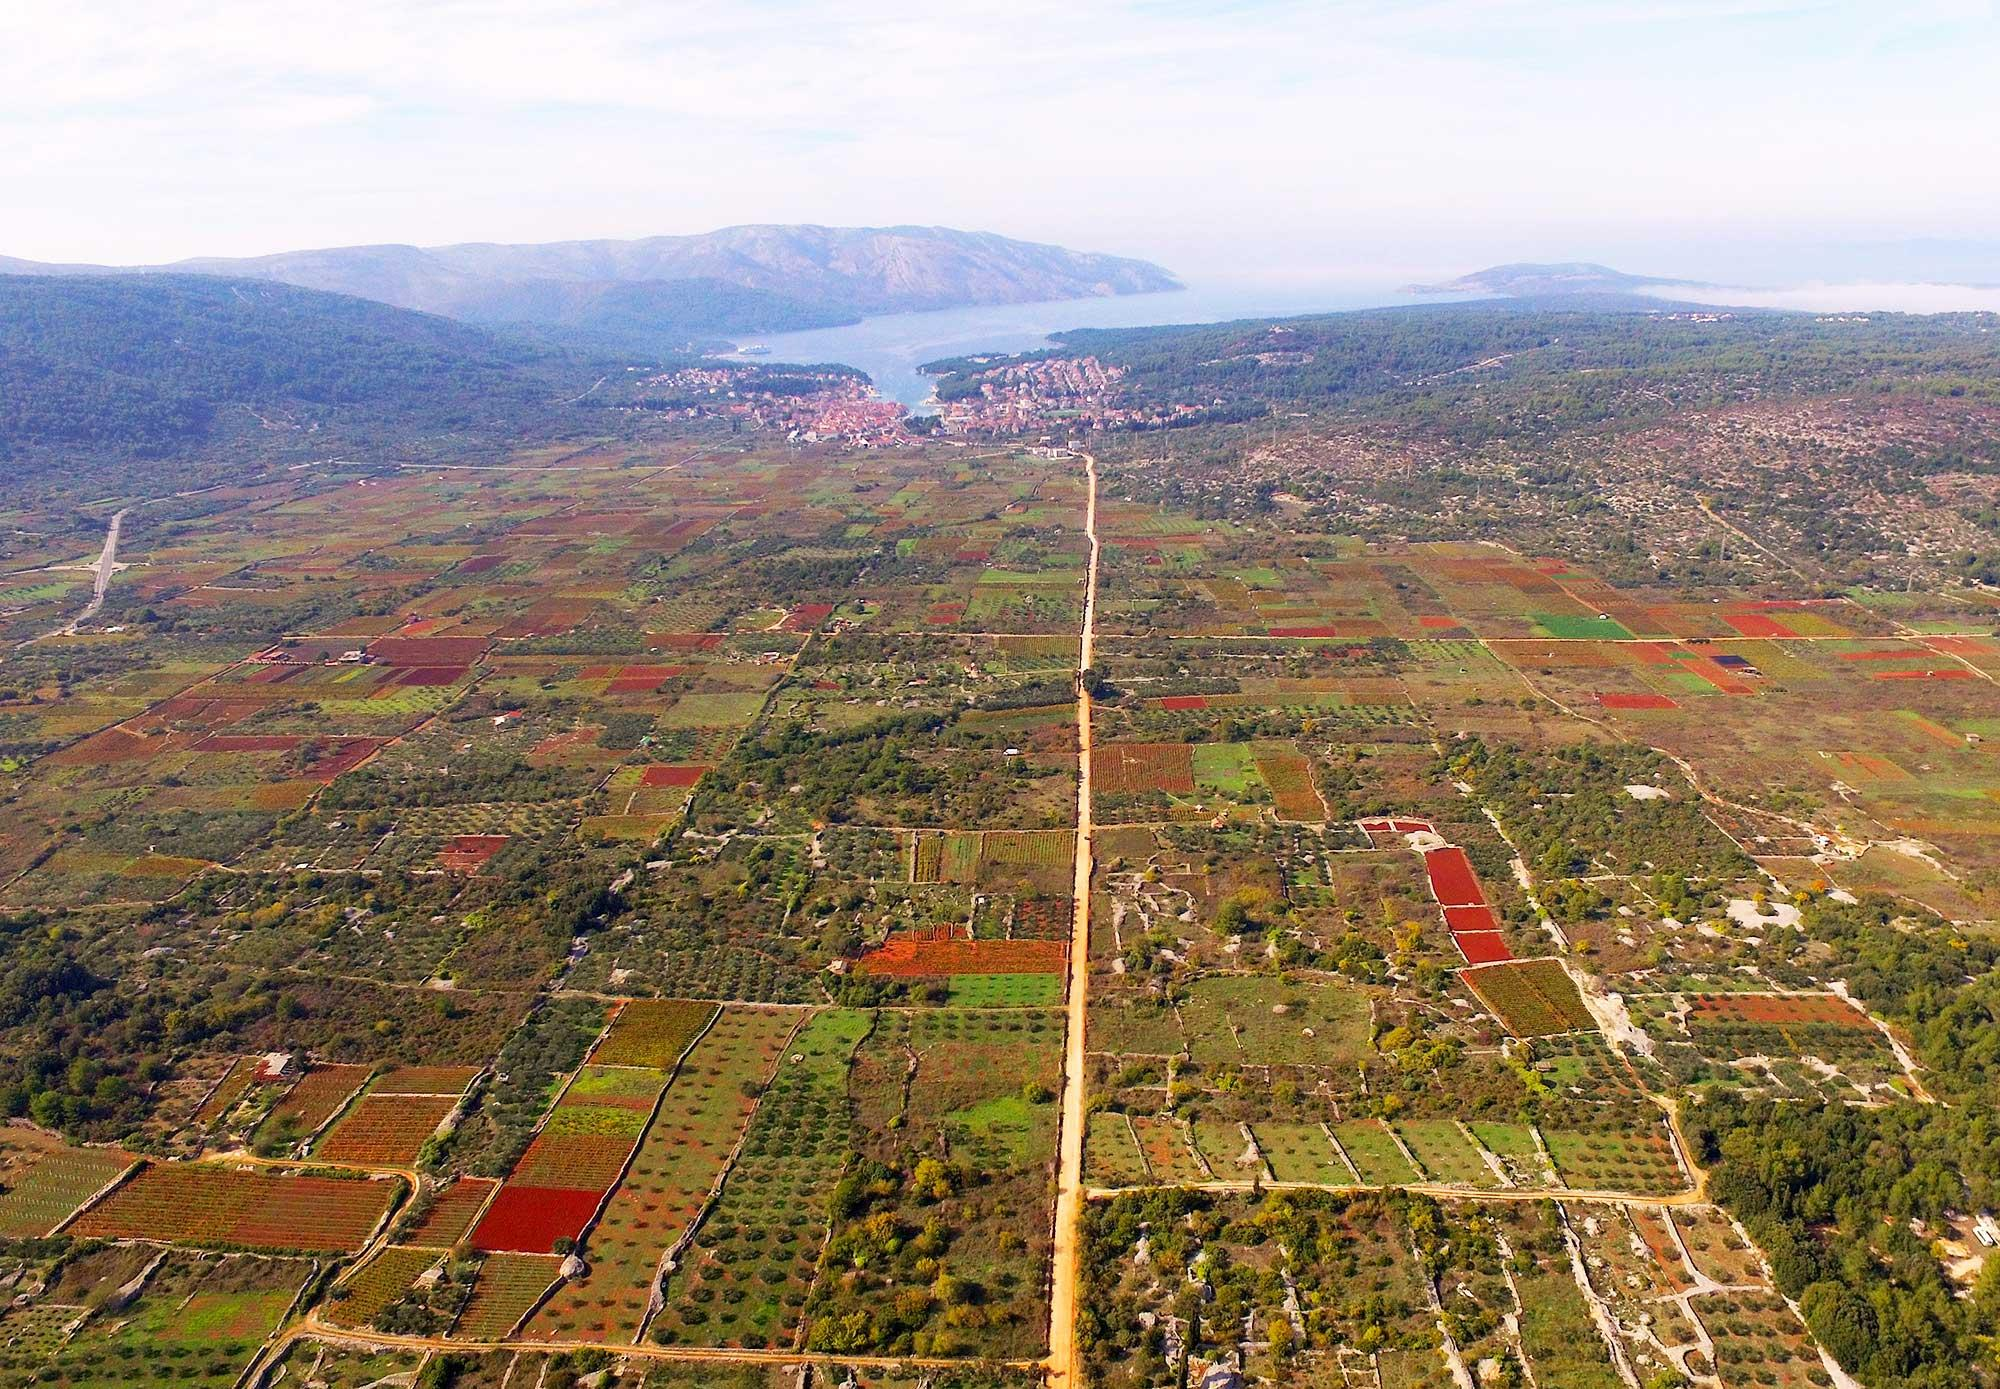 The land parcel system set up by the Greek colonisers has been respected over later periods, and the cultivation of grapes and olives here has been uninterrupted for 24 centuries up to the present day. – © Stari Grad Plain